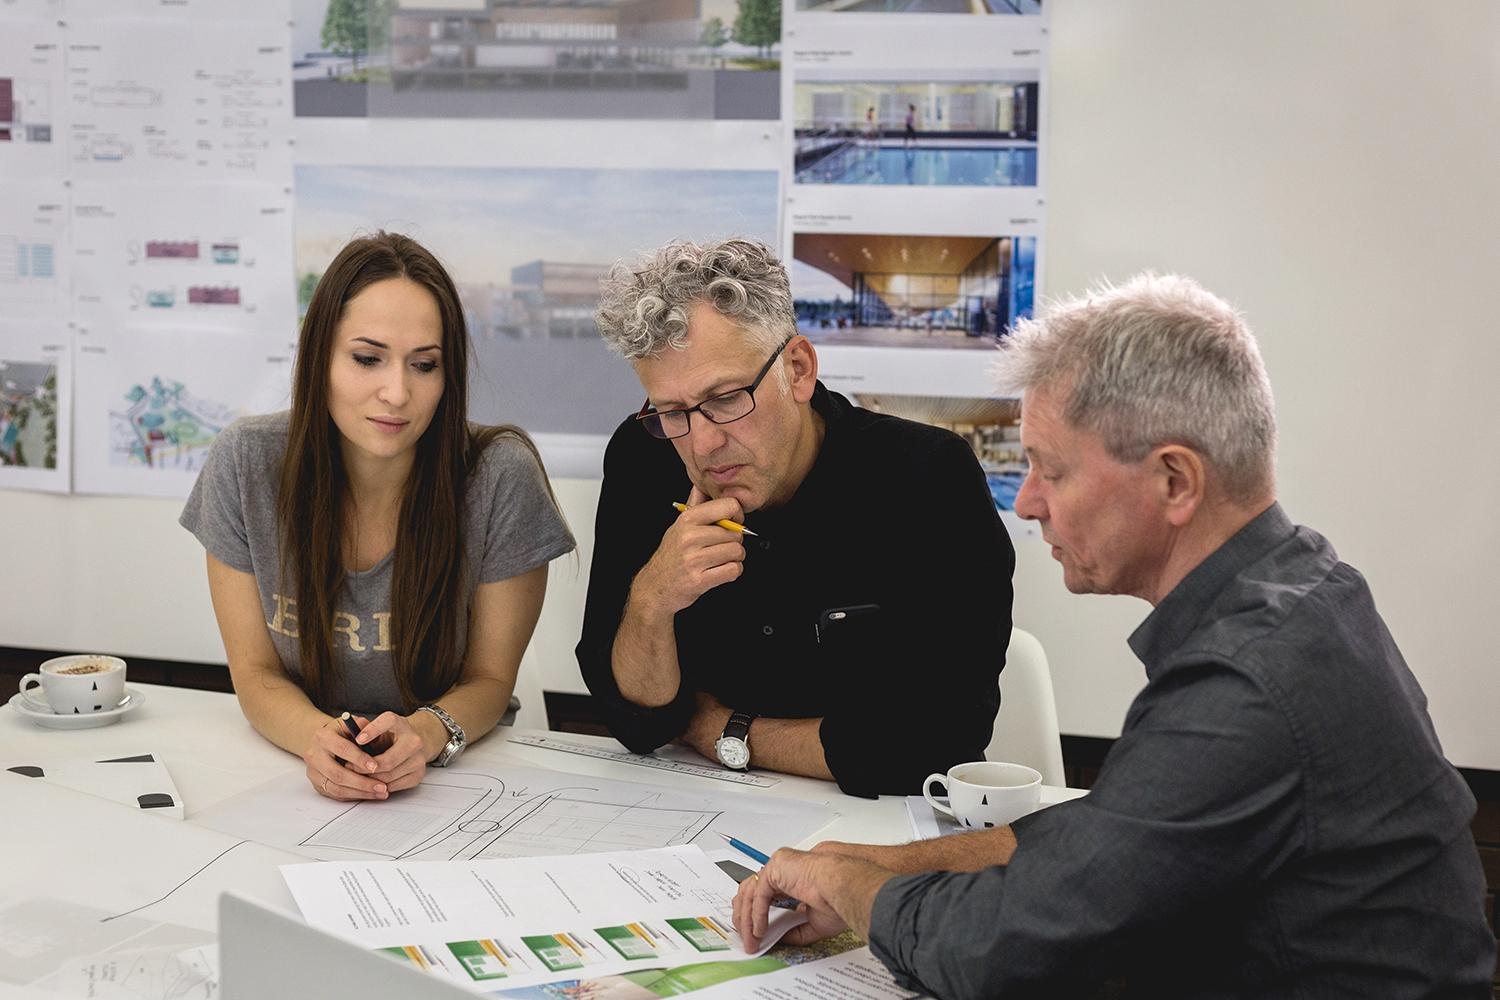 The architects have been given challenging sustainability targets, including minimising the building's carbon footprint